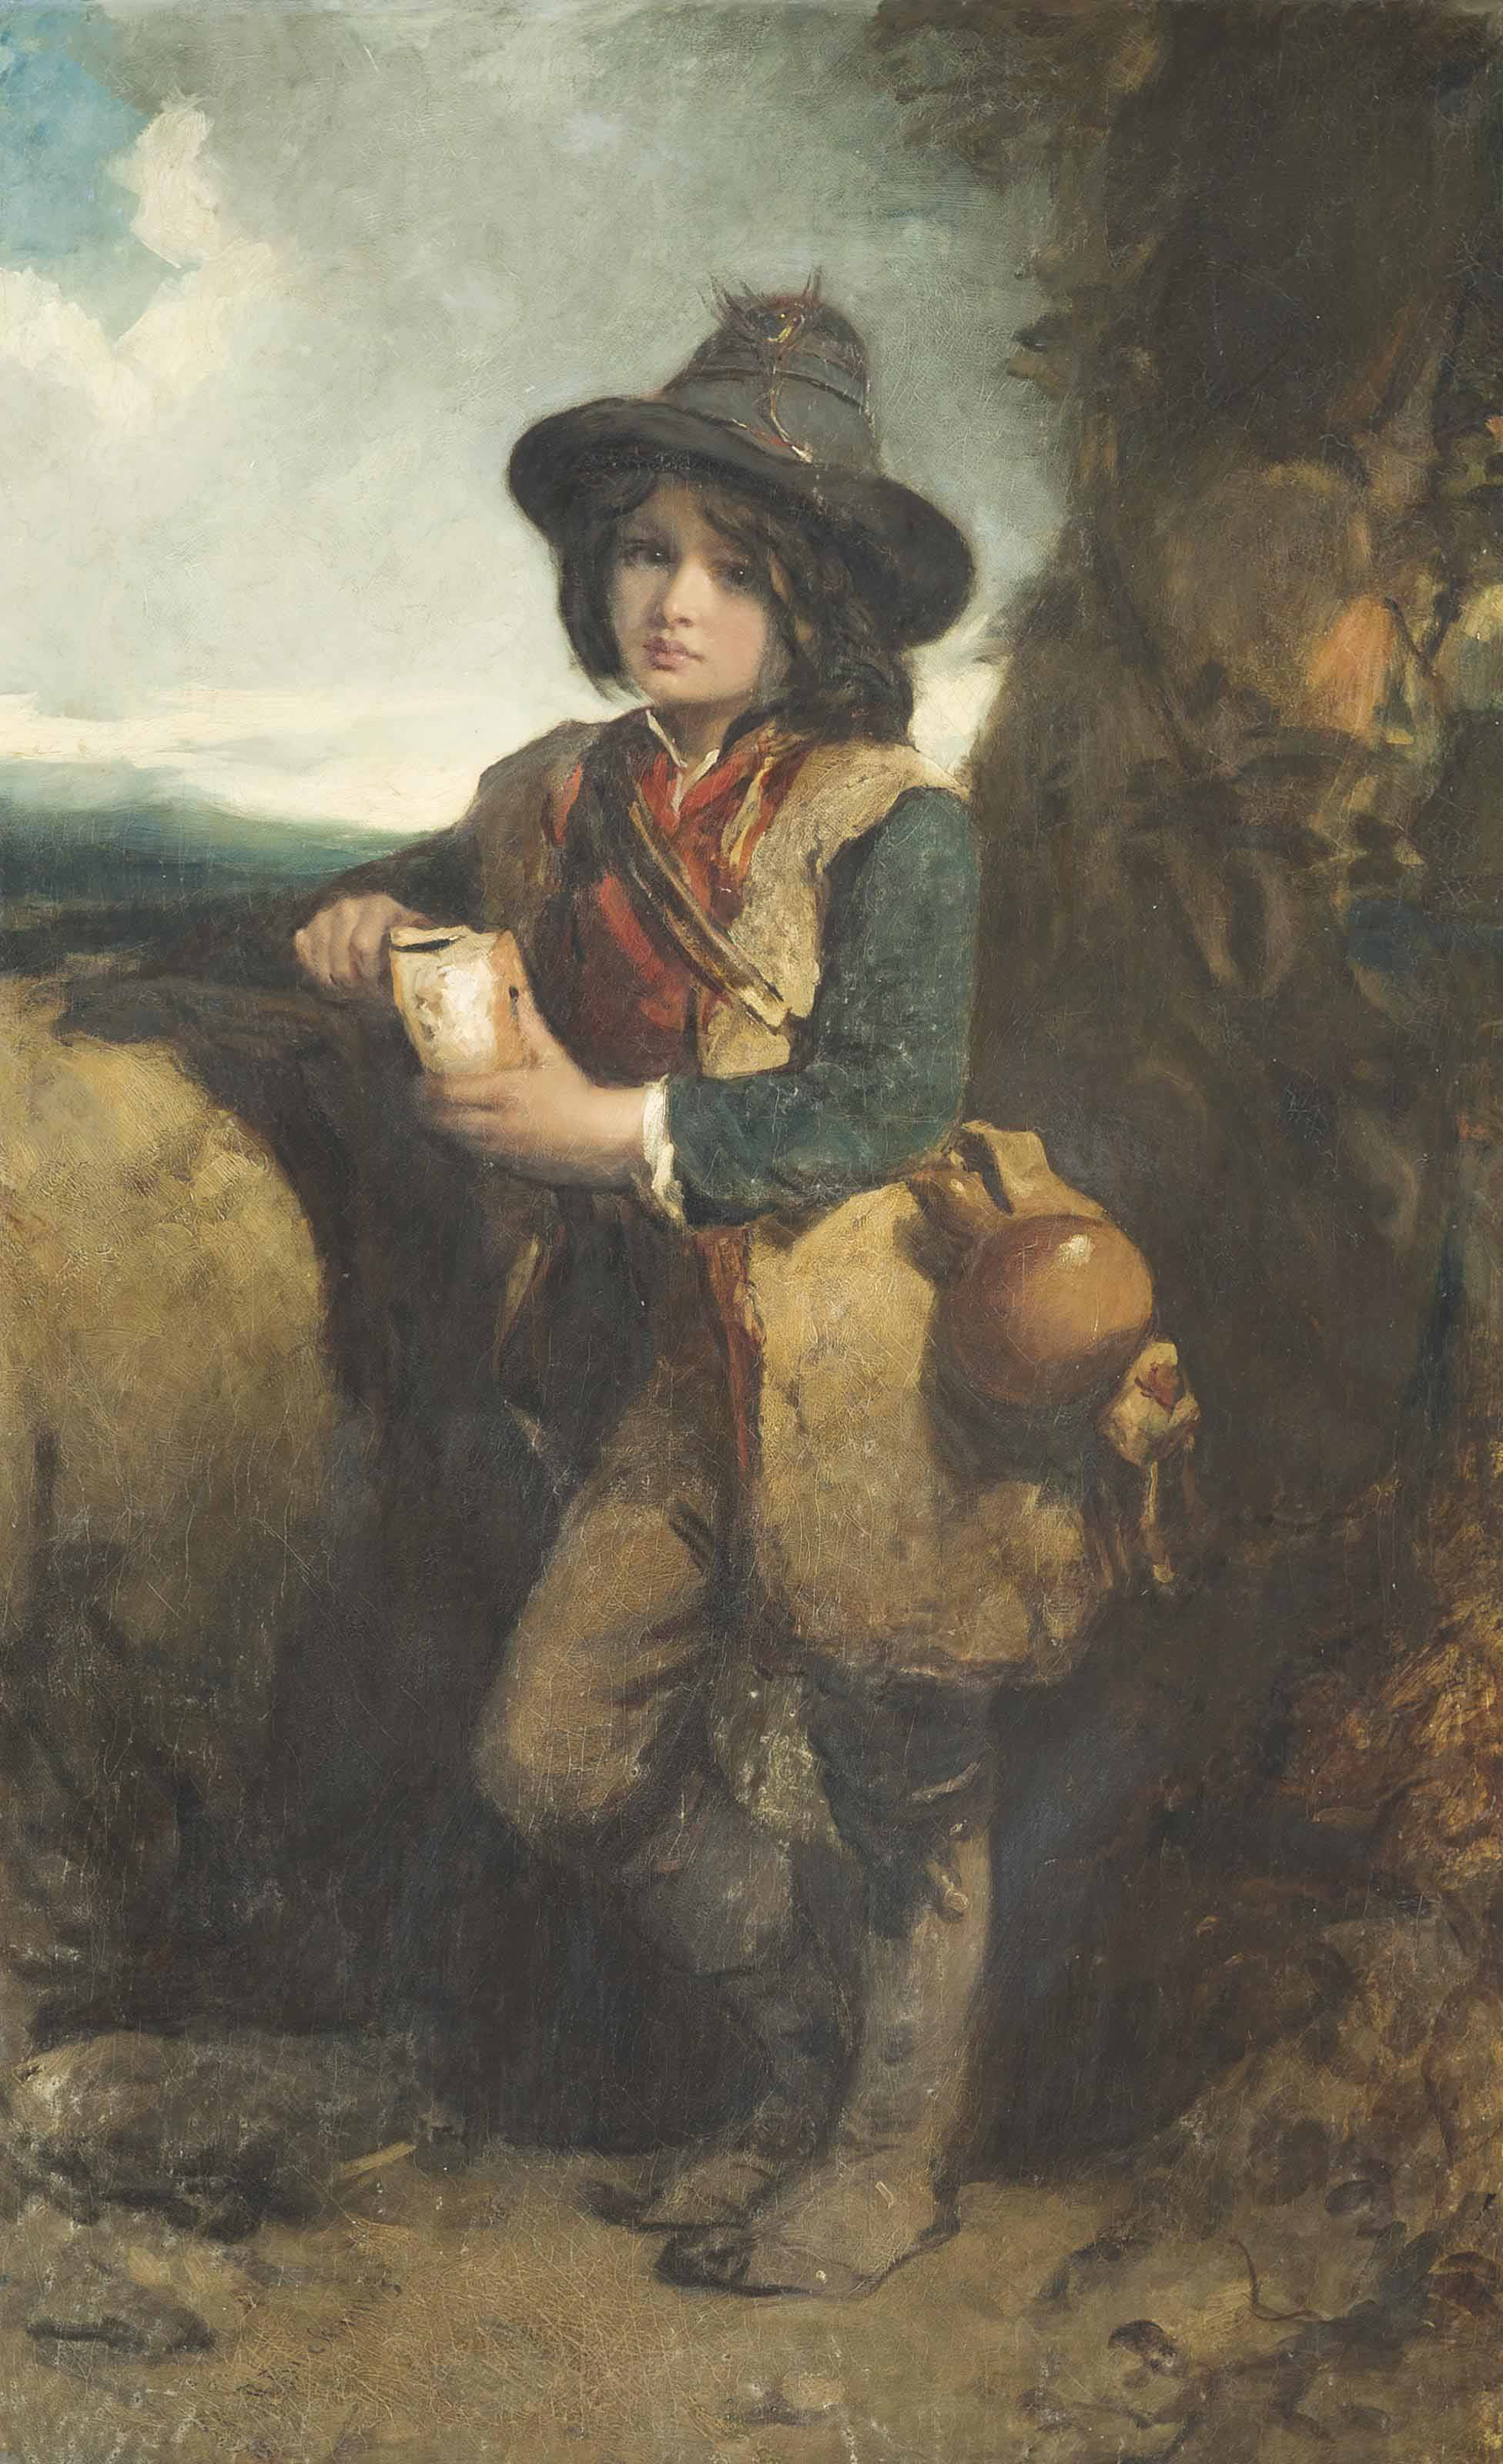 Angelo, a peasant boy of the Roman campagna